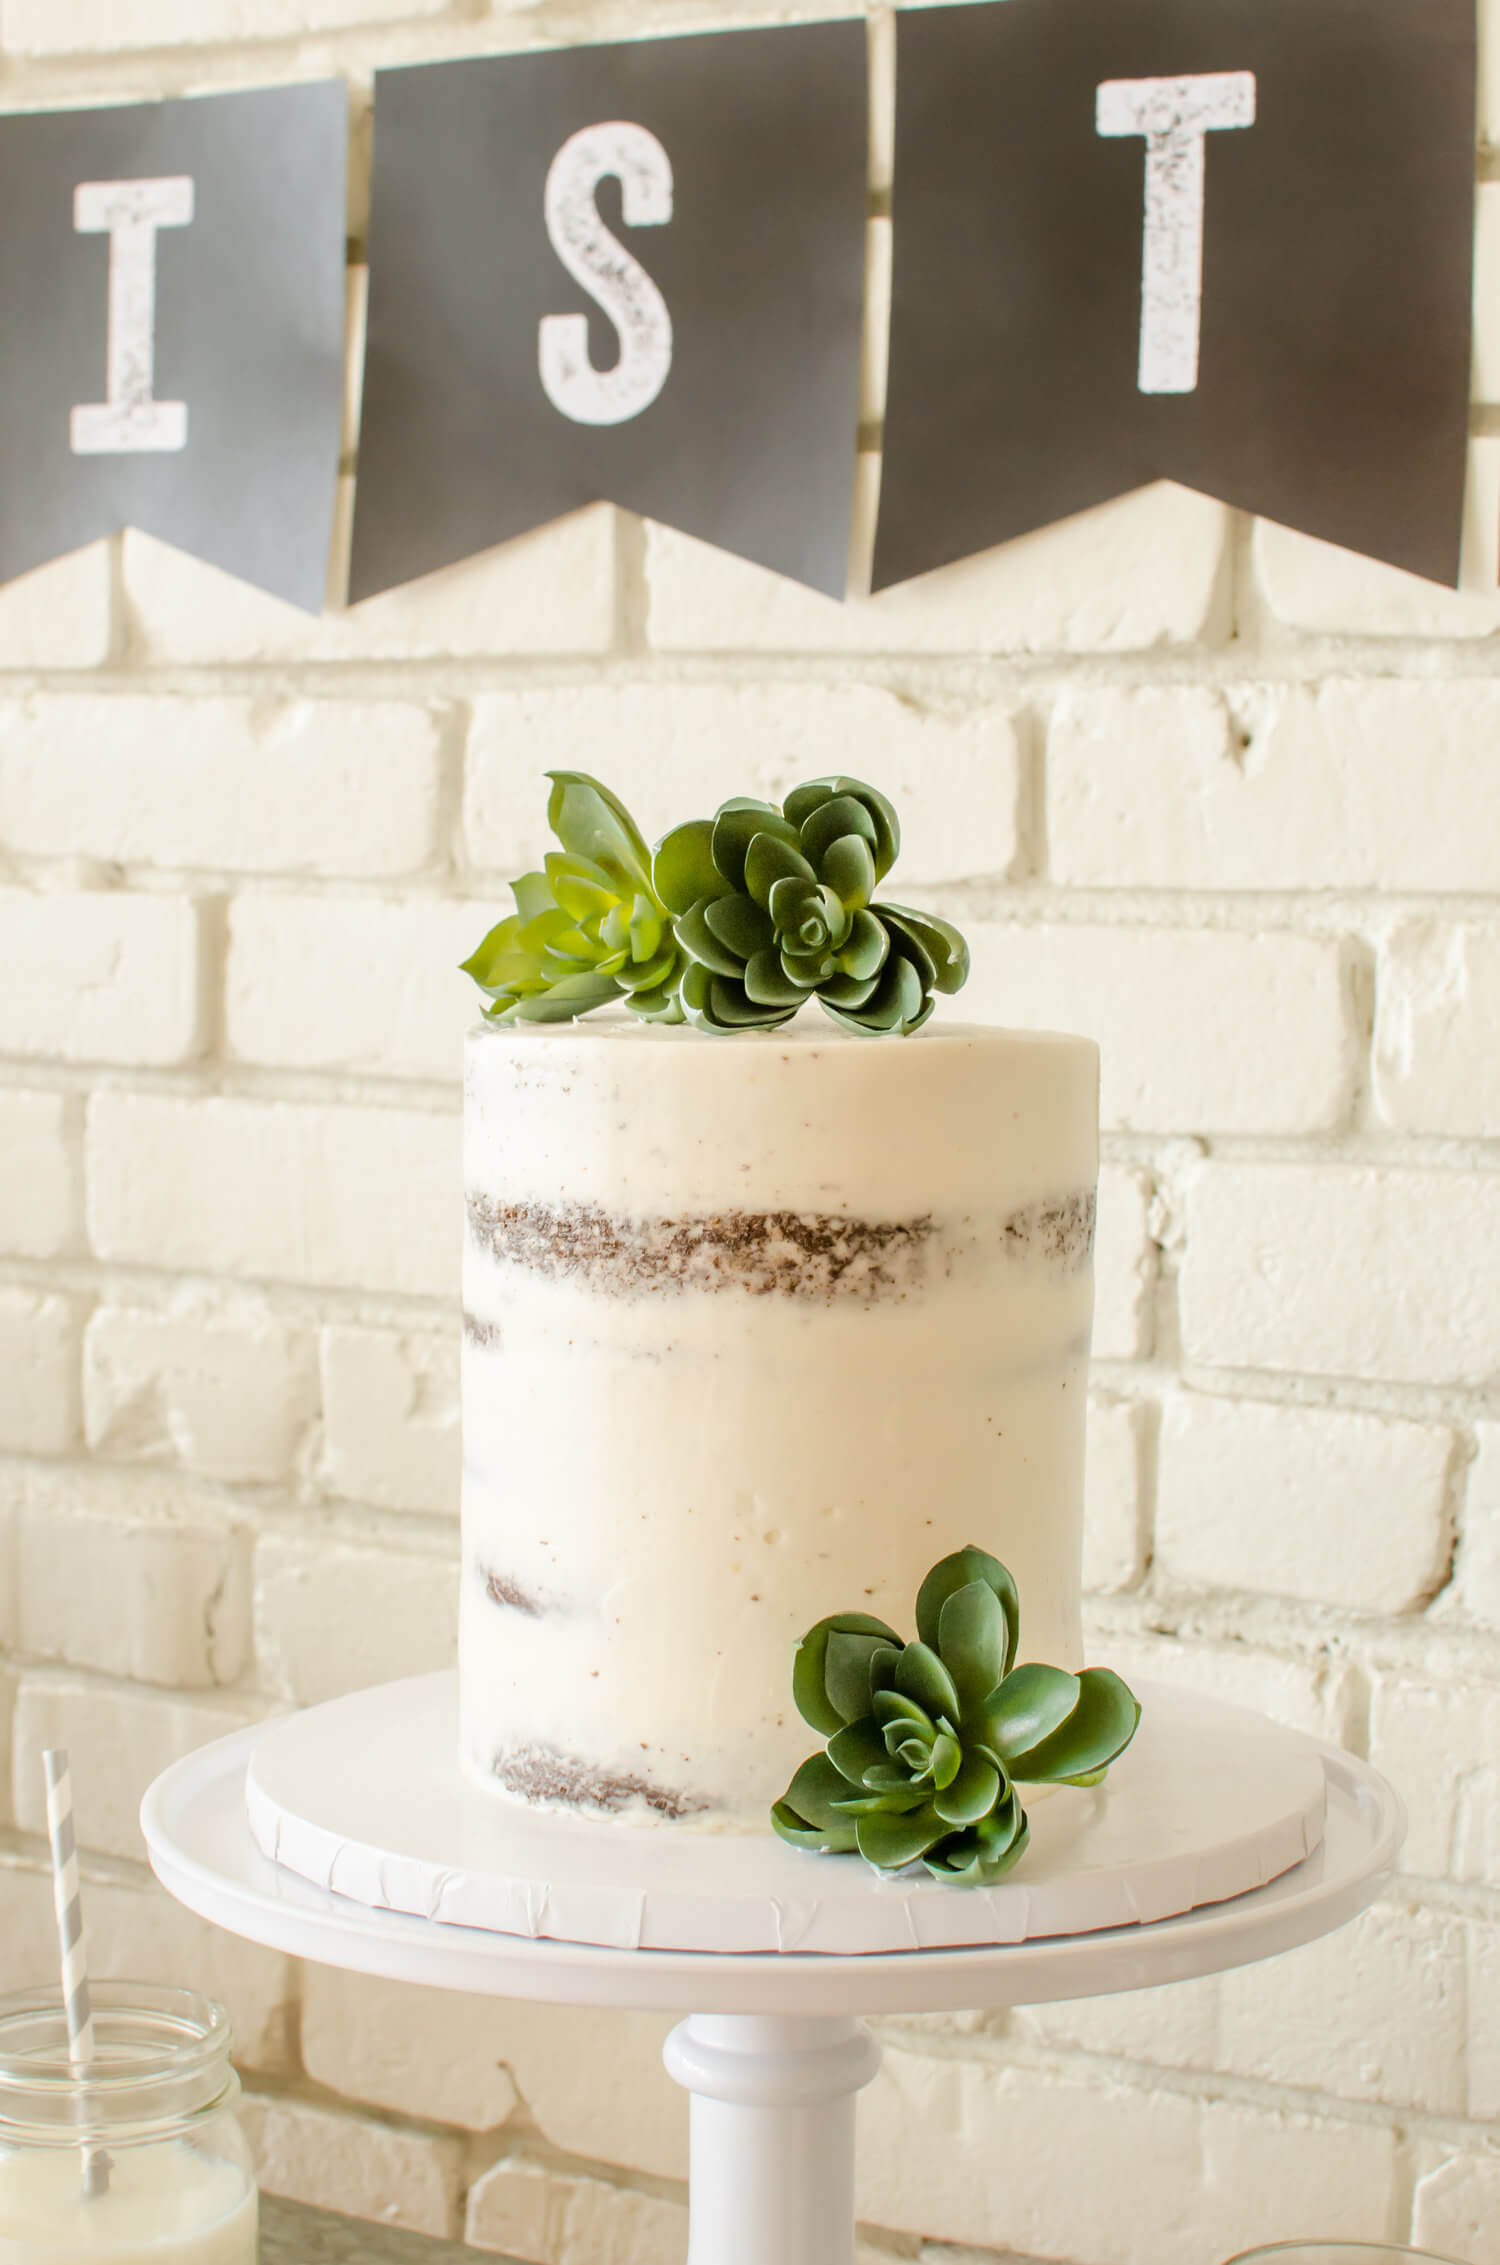 Chocolate Naked cake with succulents.jpg